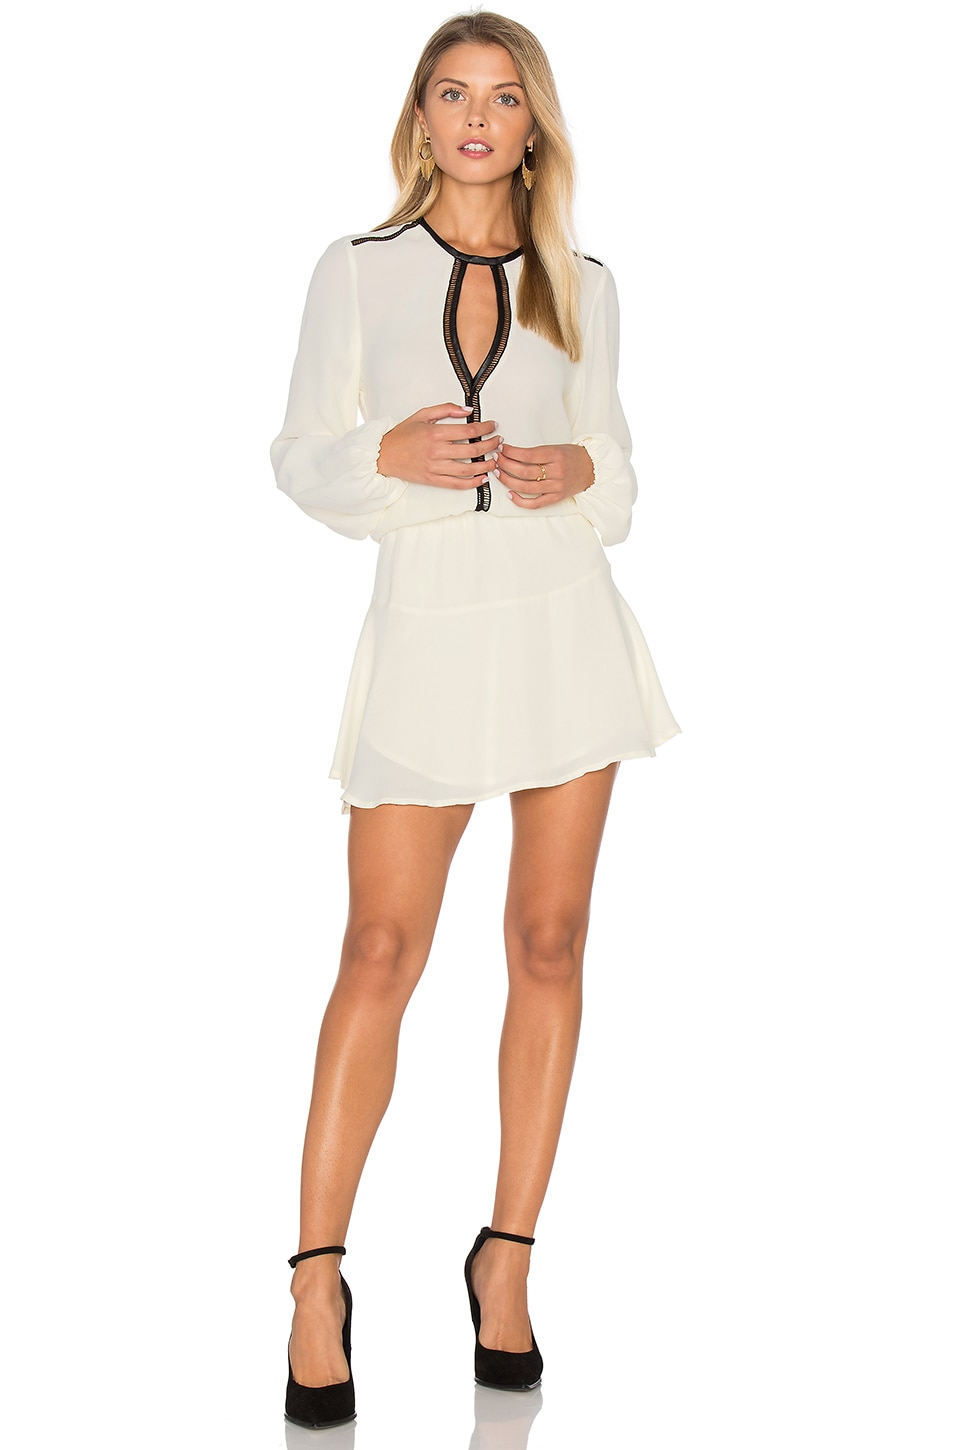 Titti Solid Mini Dress by Karina Grimaldi